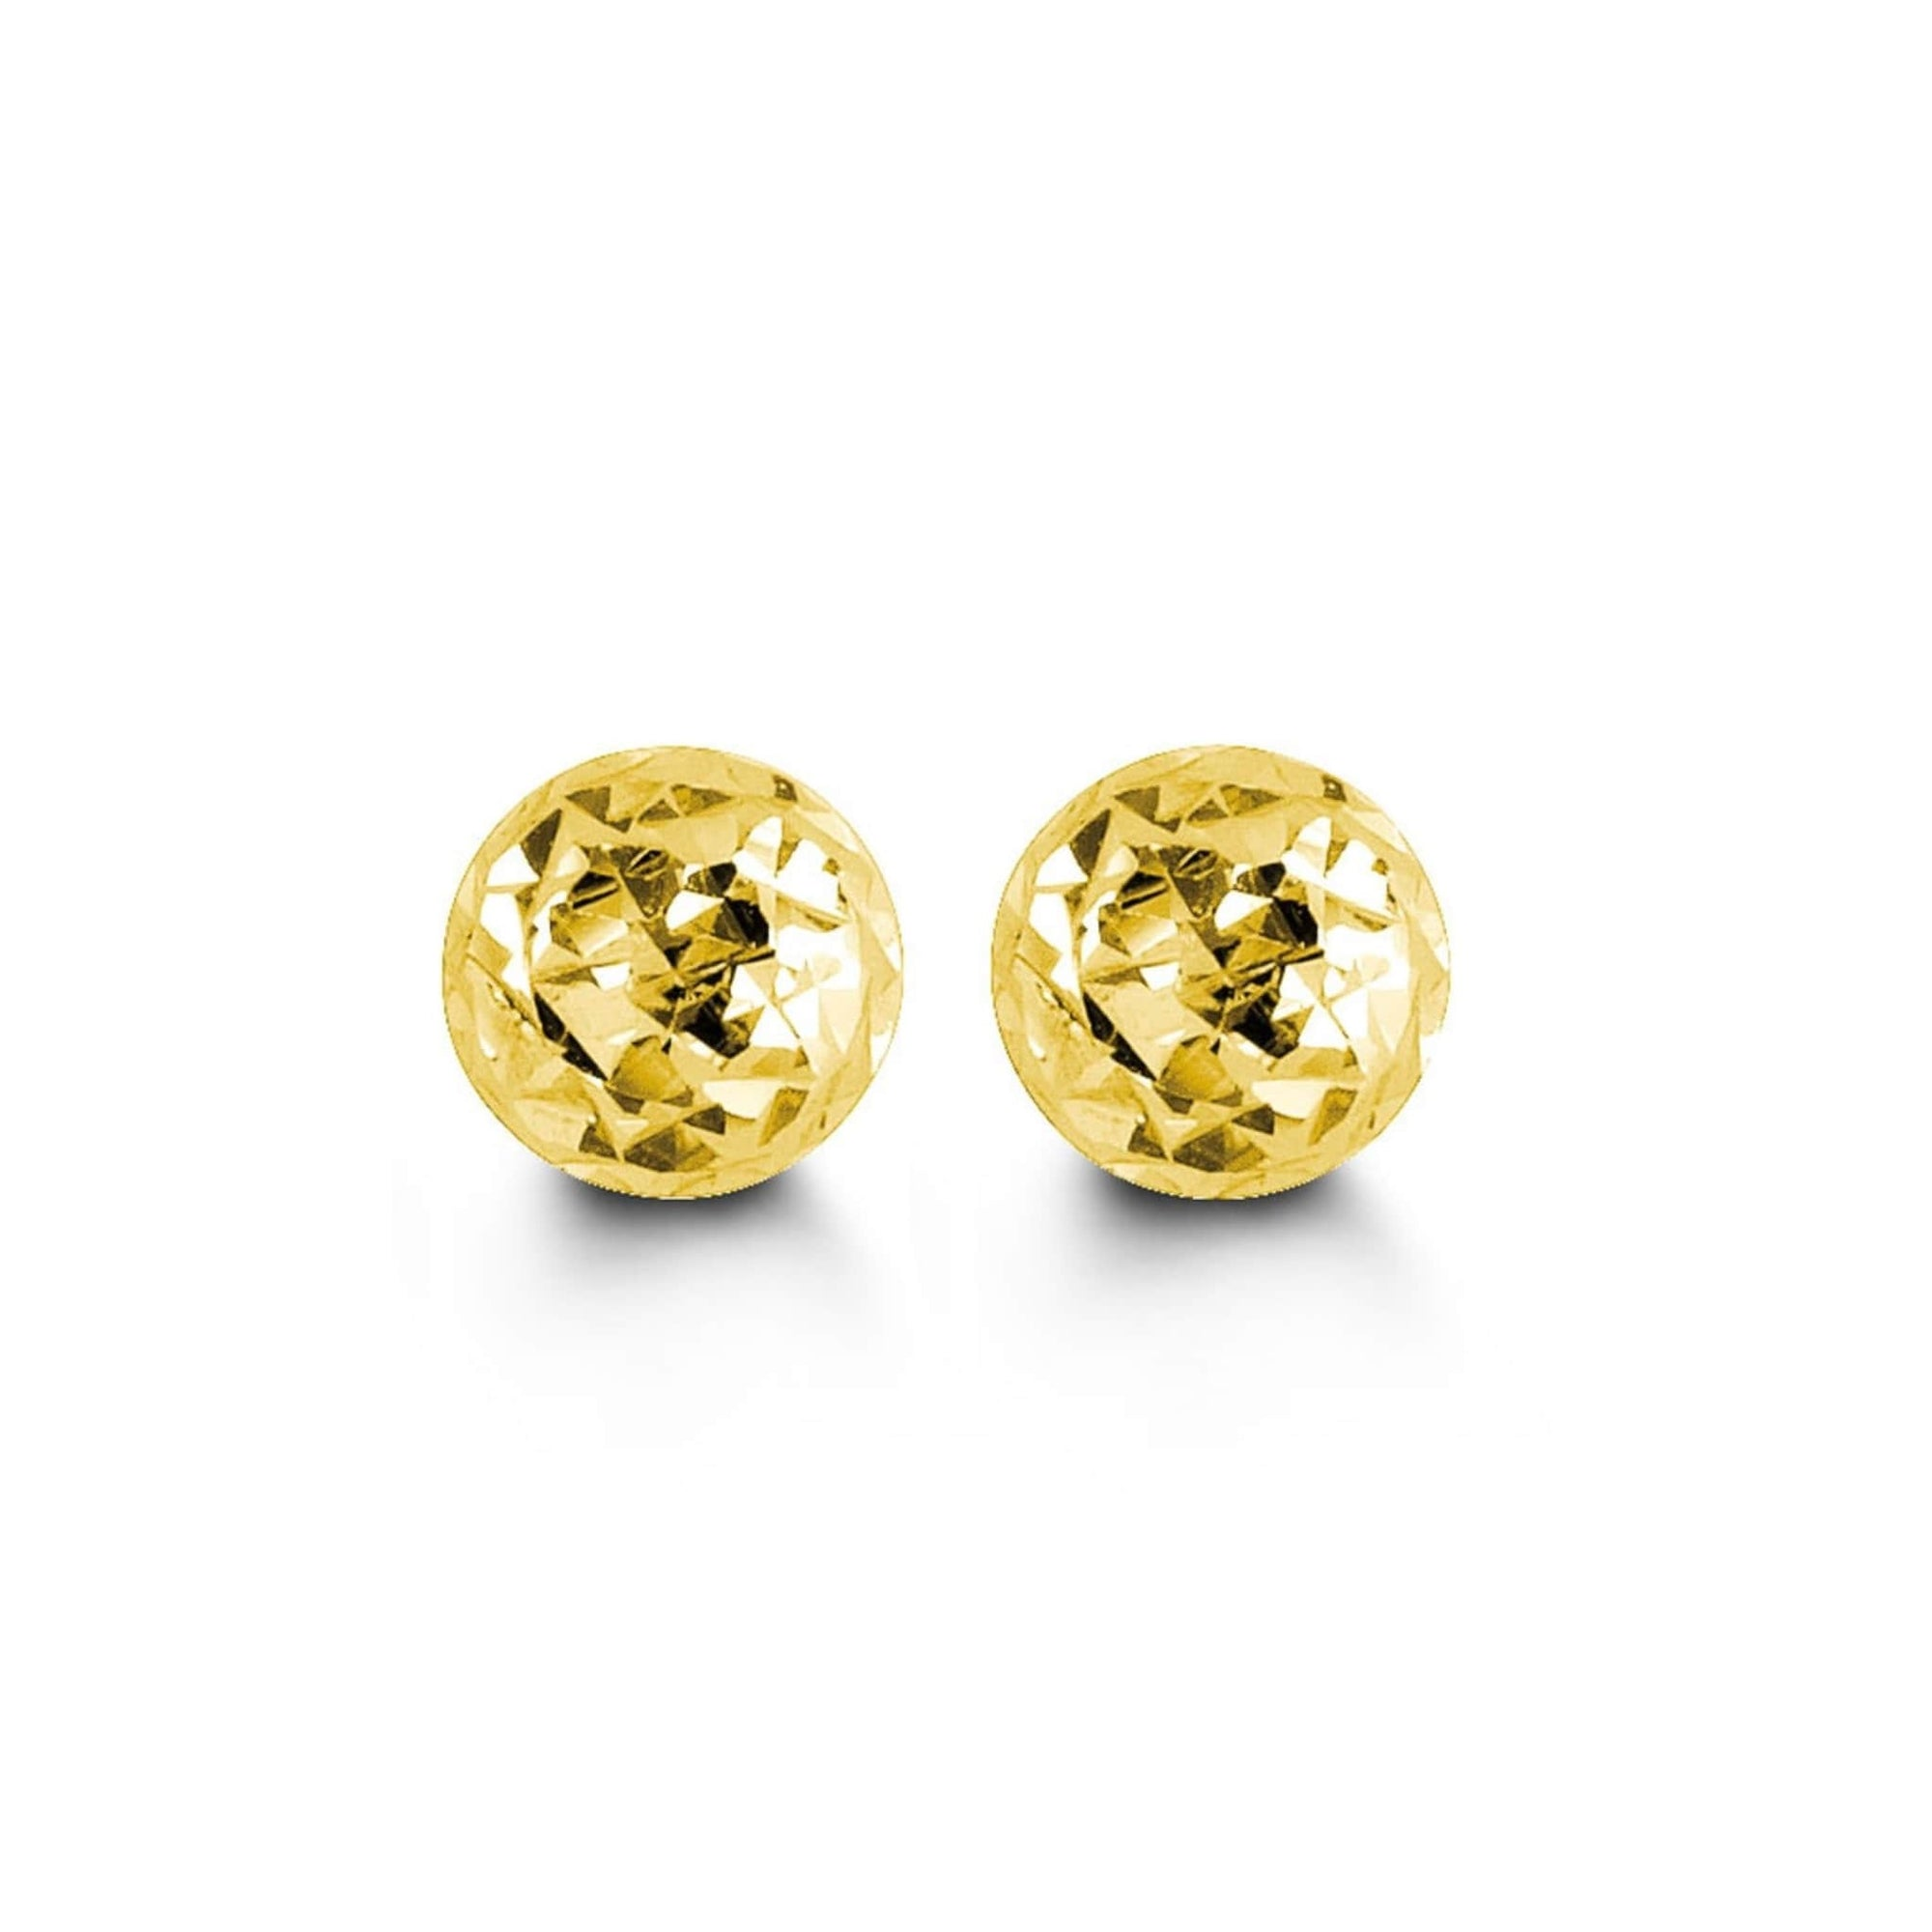 5mm 10K Yellow Gold Cosmo Stud Earrings at Arman's Jewellers